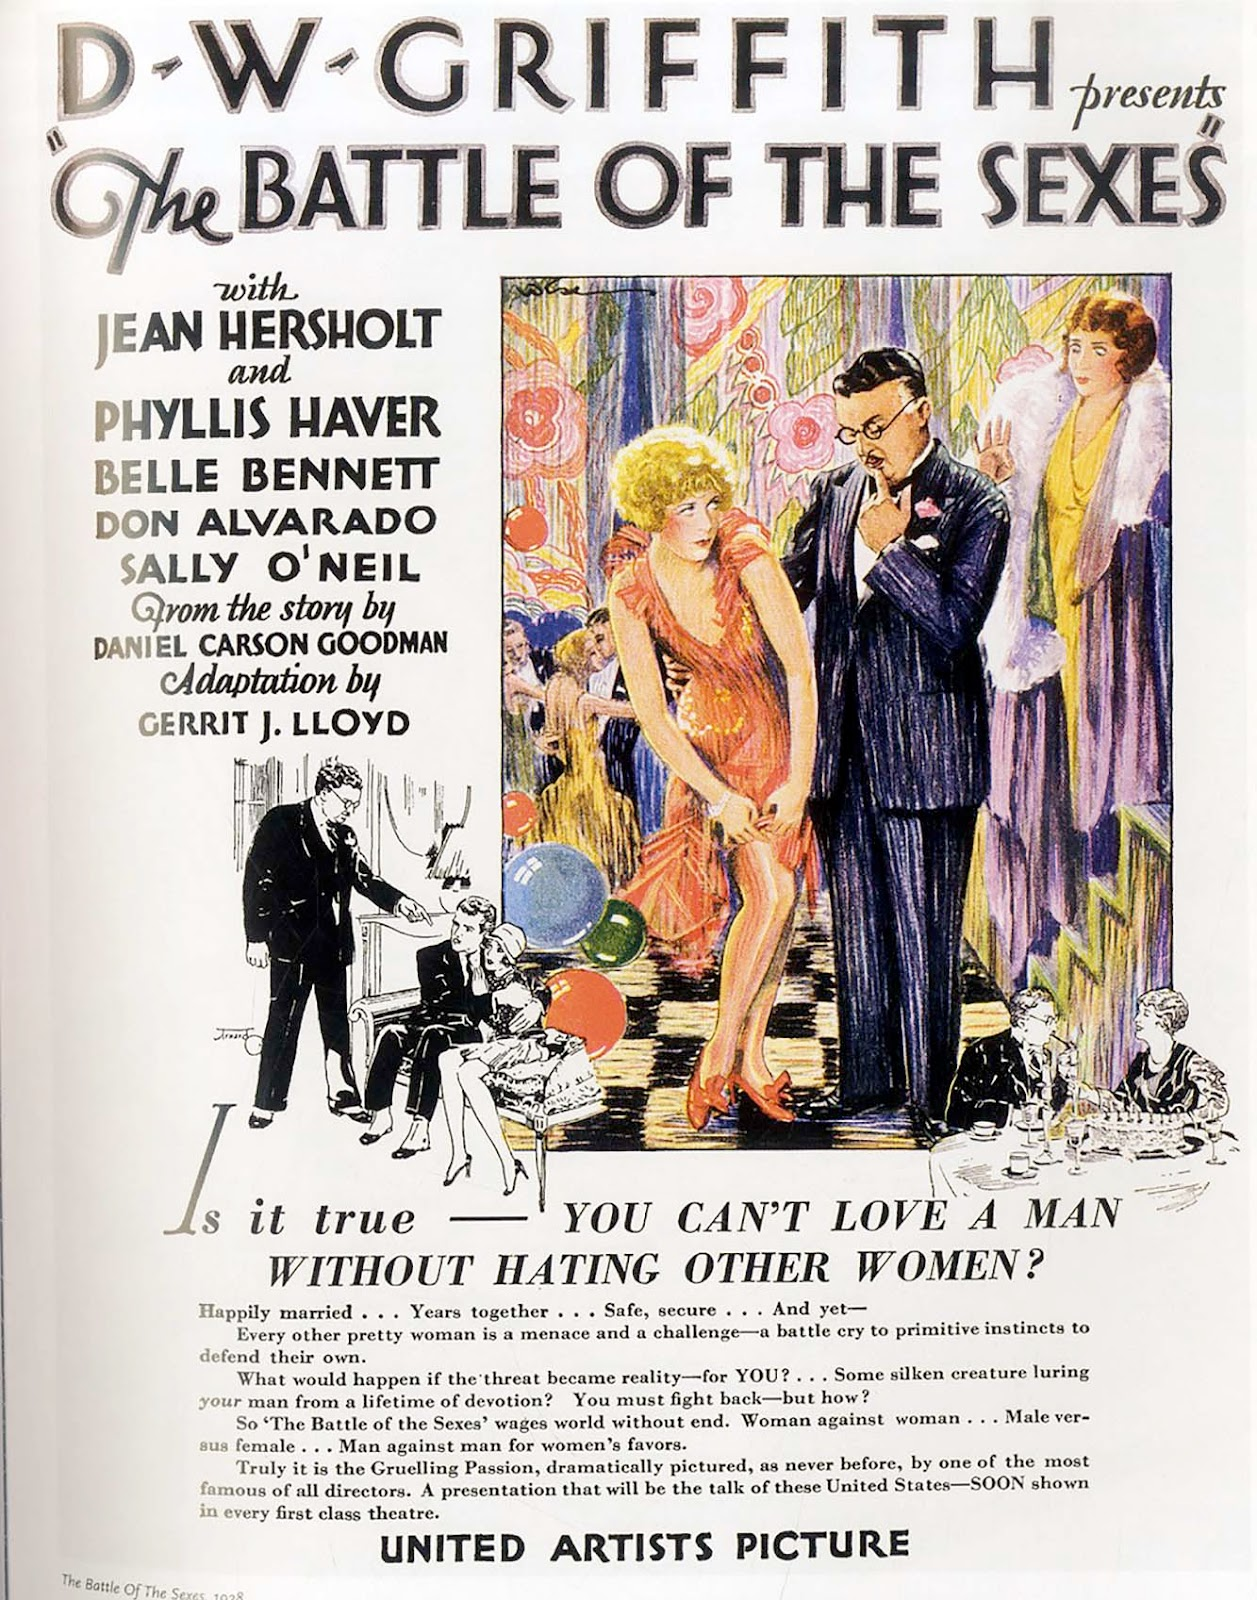 The Visual Primer Of Advertising Cliches Autoette 24 Volt Wiring Diagram Film Battle Sexes Dwgriffith 1928 You Cant Love A Man Without Hating Other Women